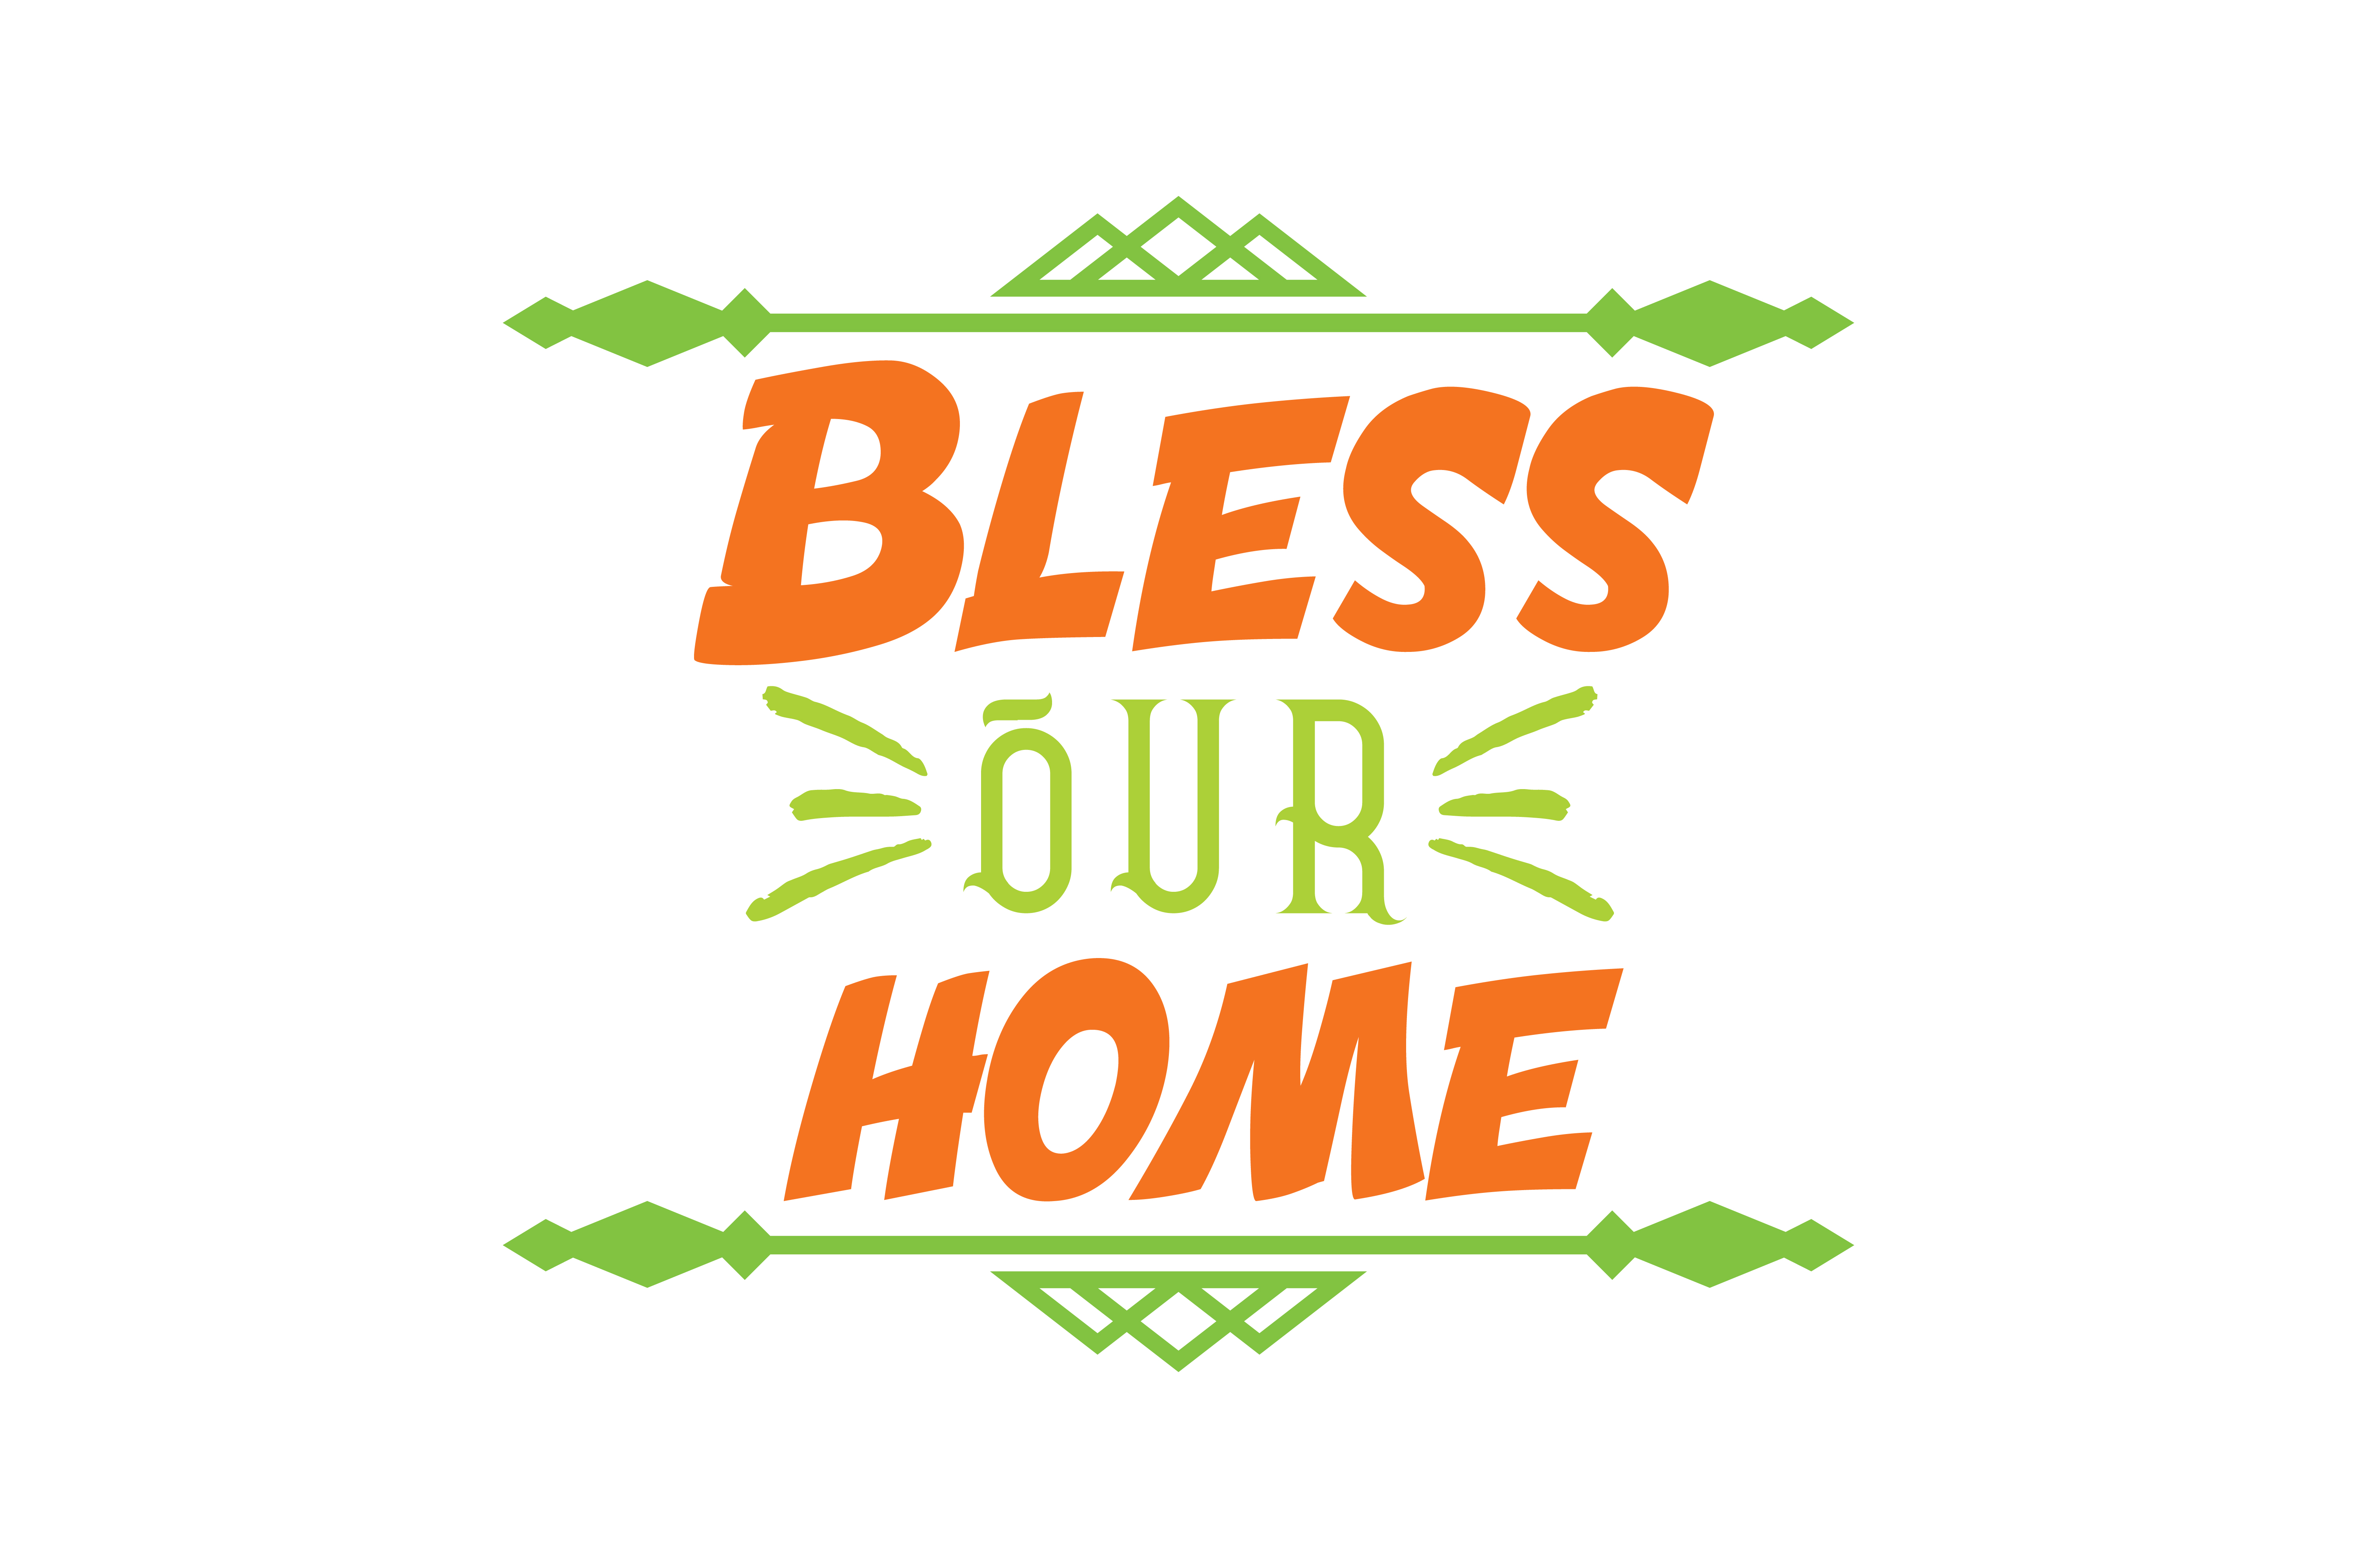 Download Free Bless Our Home Quote Svg Cut Graphic By Thelucky Creative Fabrica for Cricut Explore, Silhouette and other cutting machines.